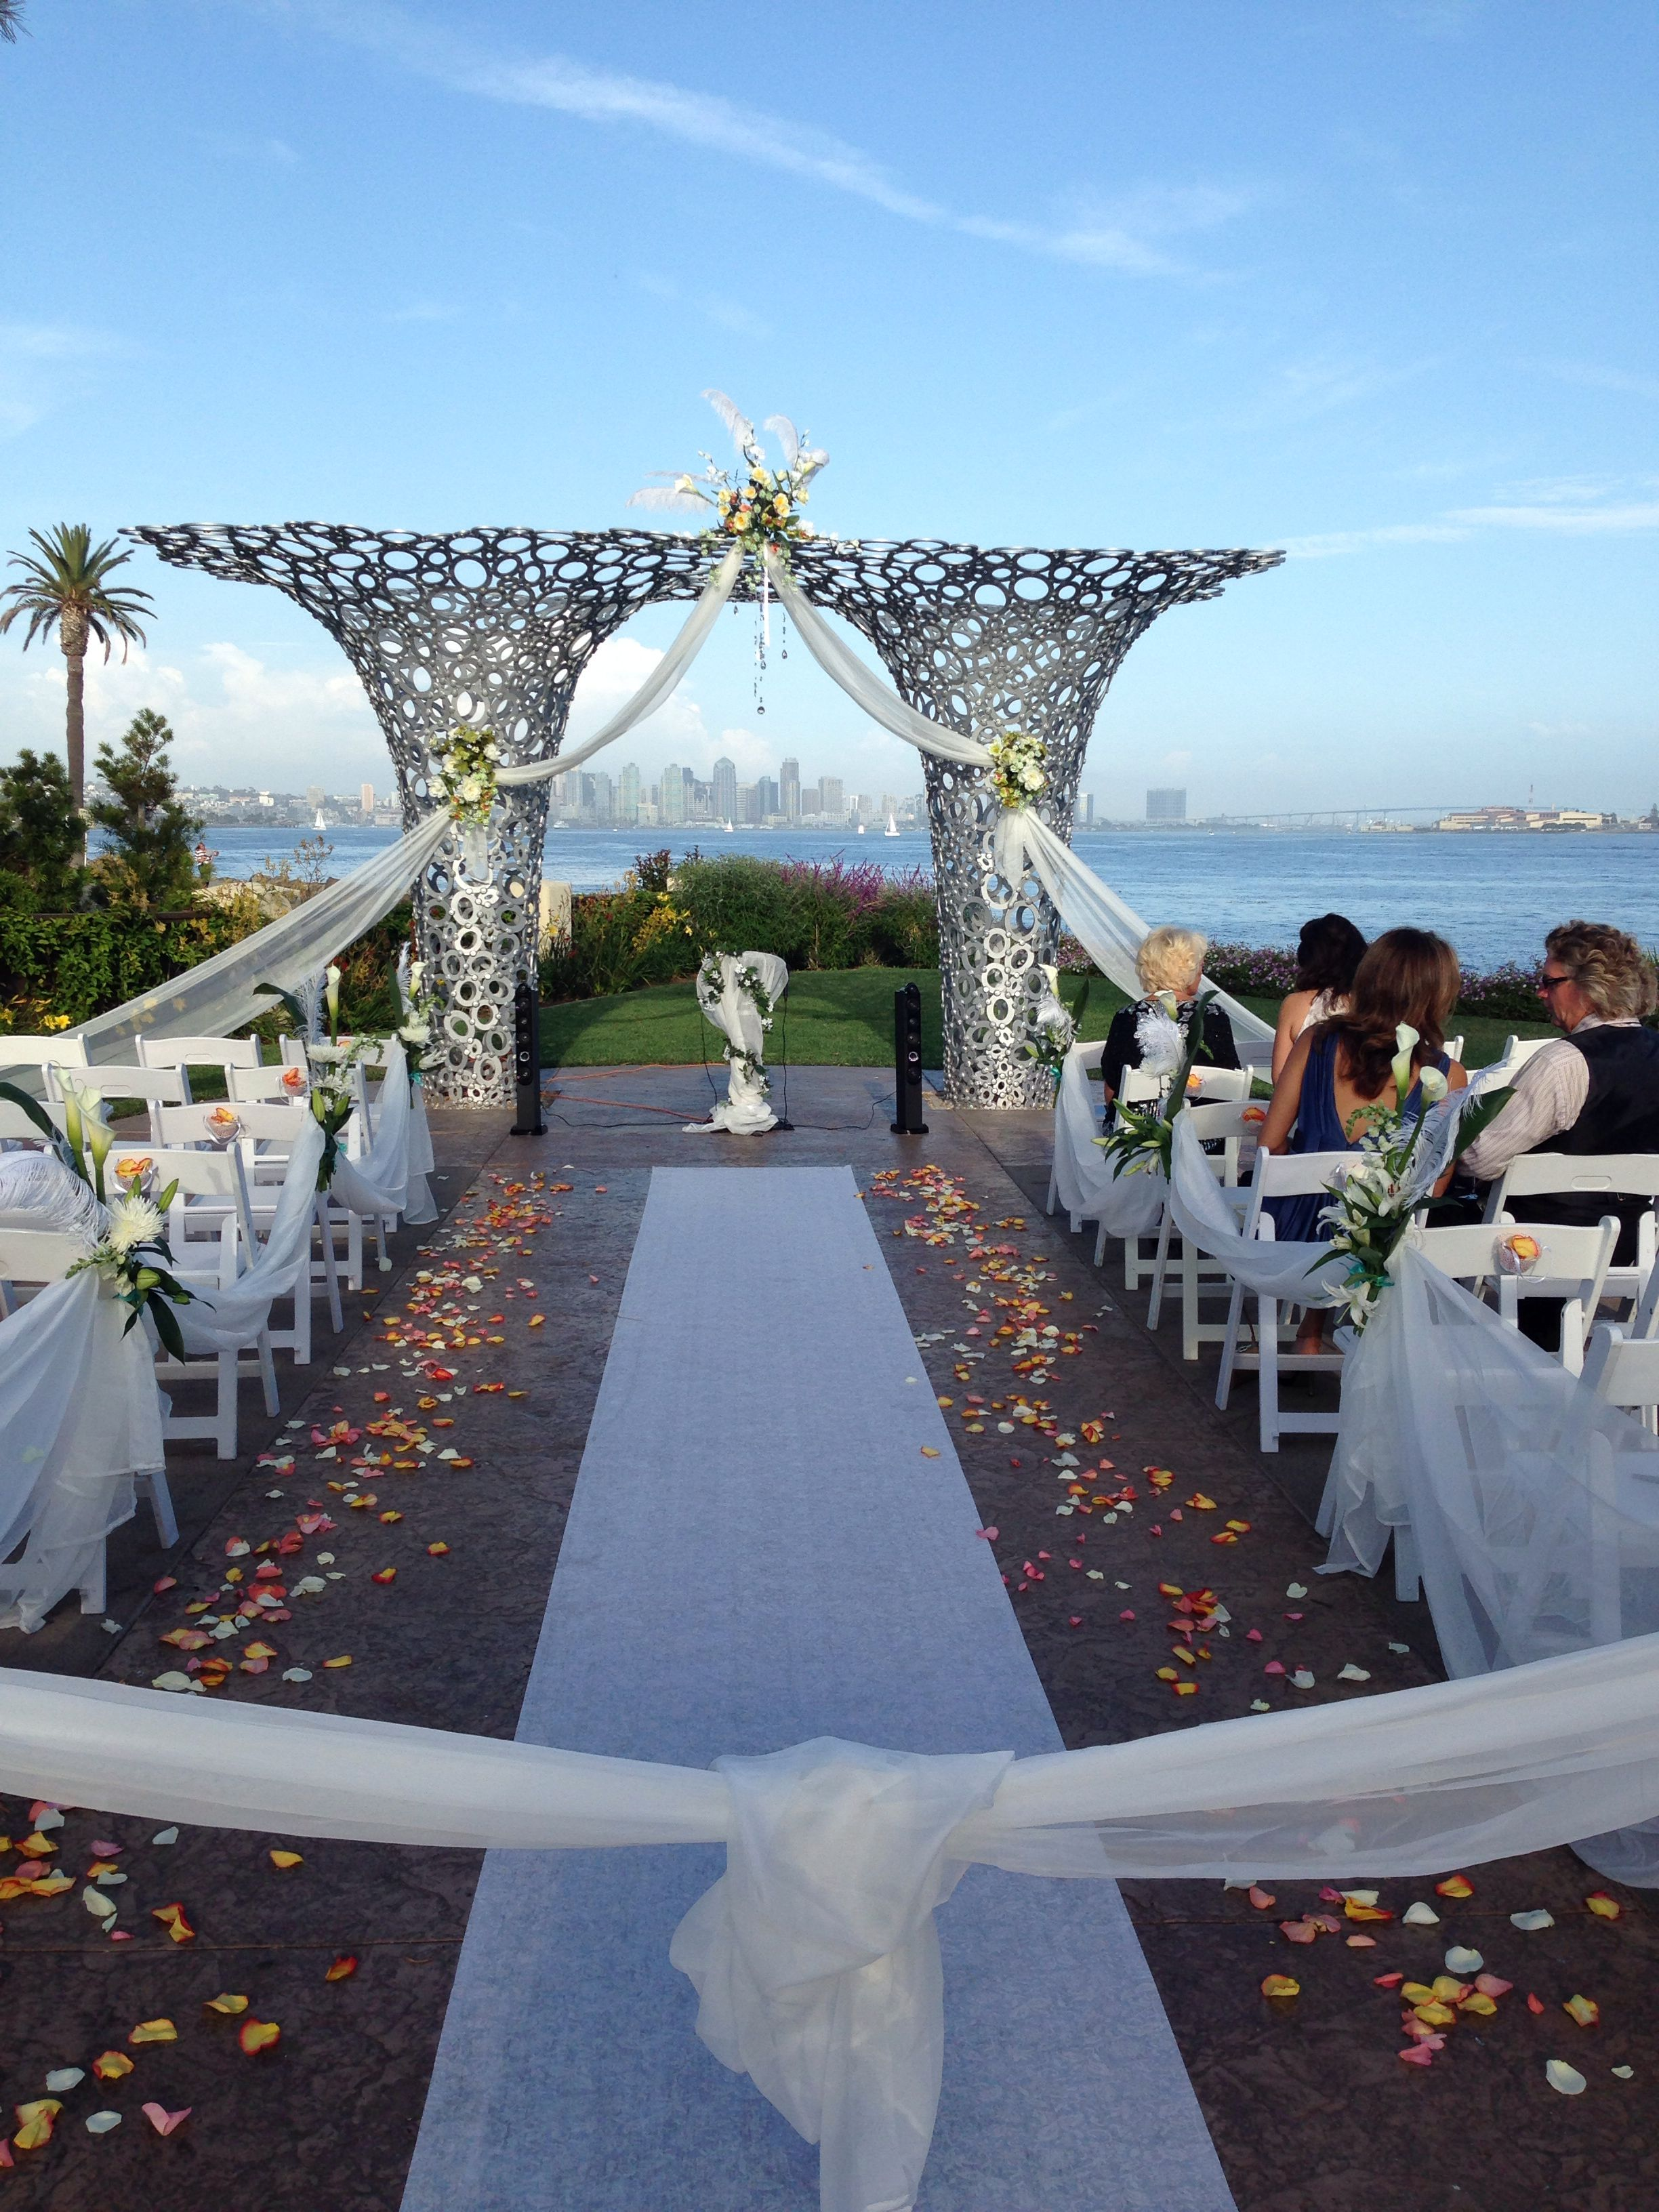 Wedding Ceremony At Tom Ham's Lighthouse I Decorated The Arch With Tule And Floral Arrangements Scrap It Designs Scrapatithotmail: Lighthouse Wedding Venue Ri At Reisefeber.org